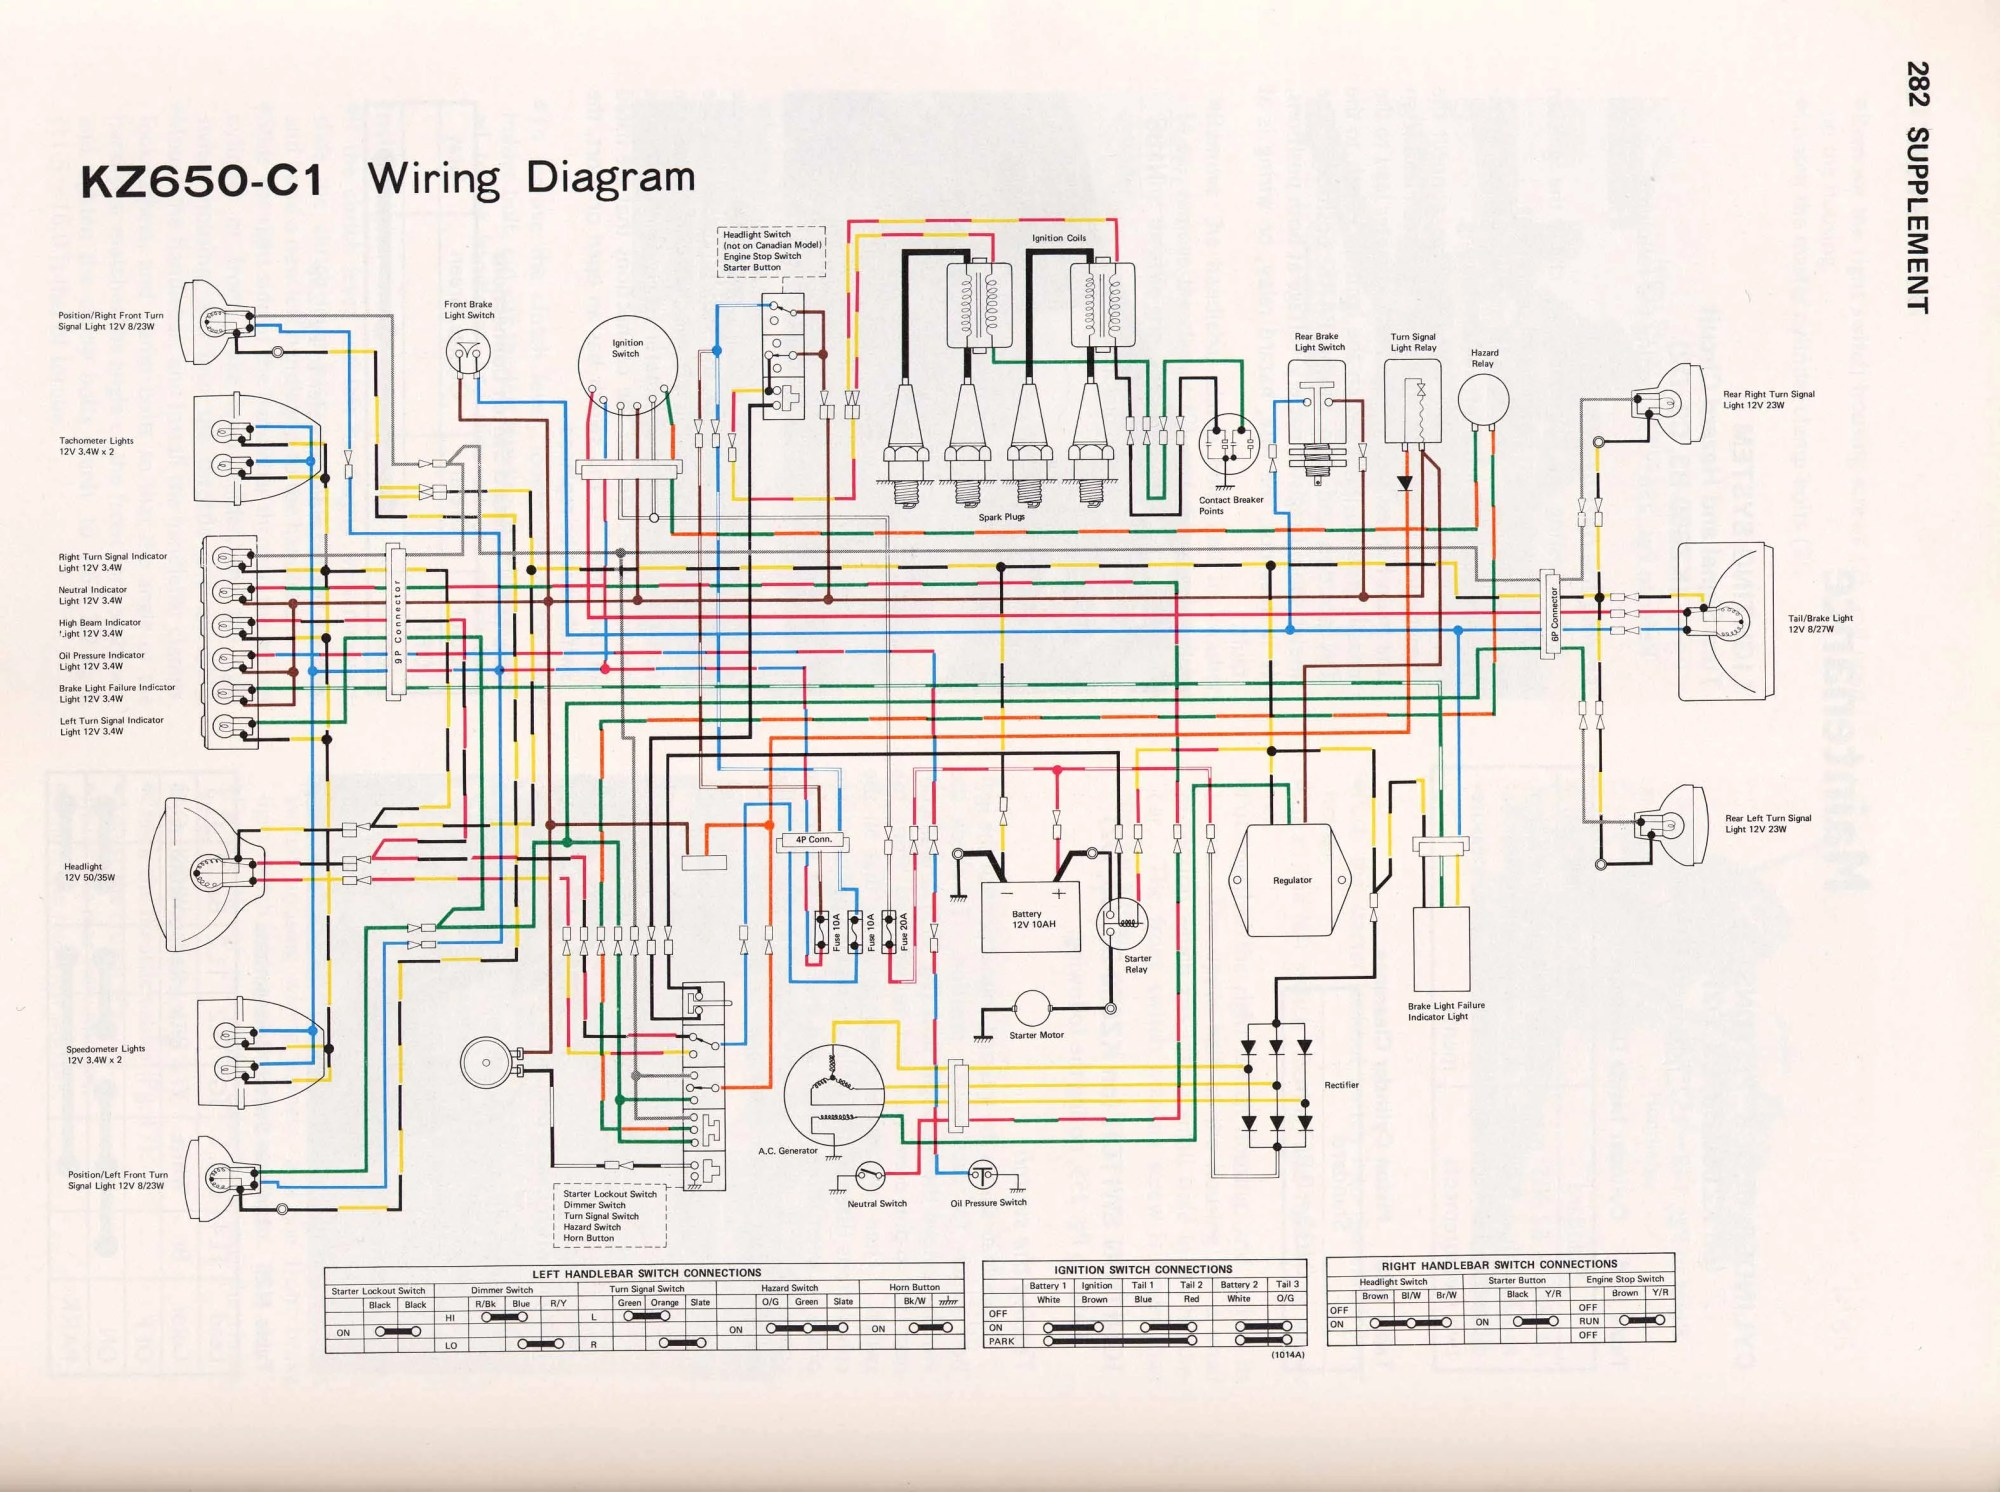 hight resolution of kz650 wiring diagram blog wiring diagram bobber kz650 wiring diagram